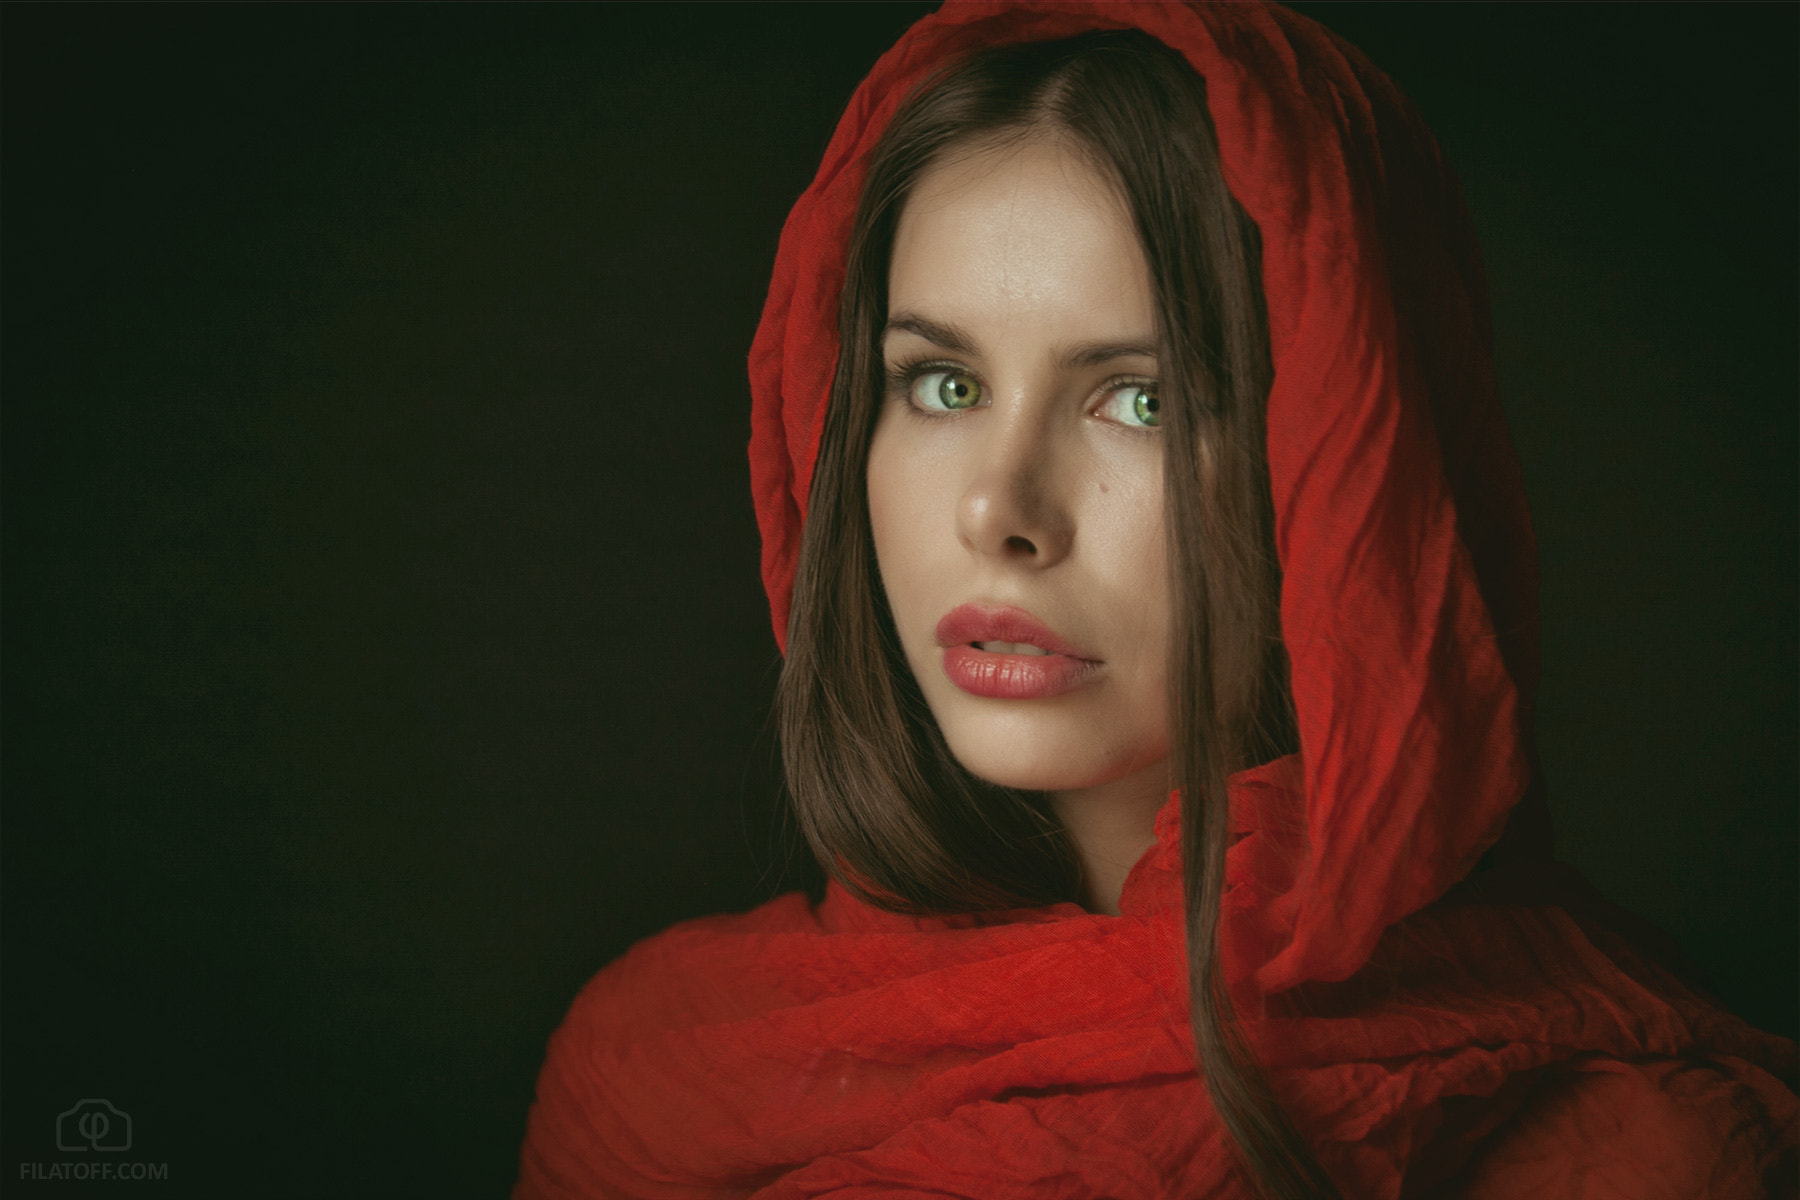 Photograph red cap by Dmitry Filatoff on 500px